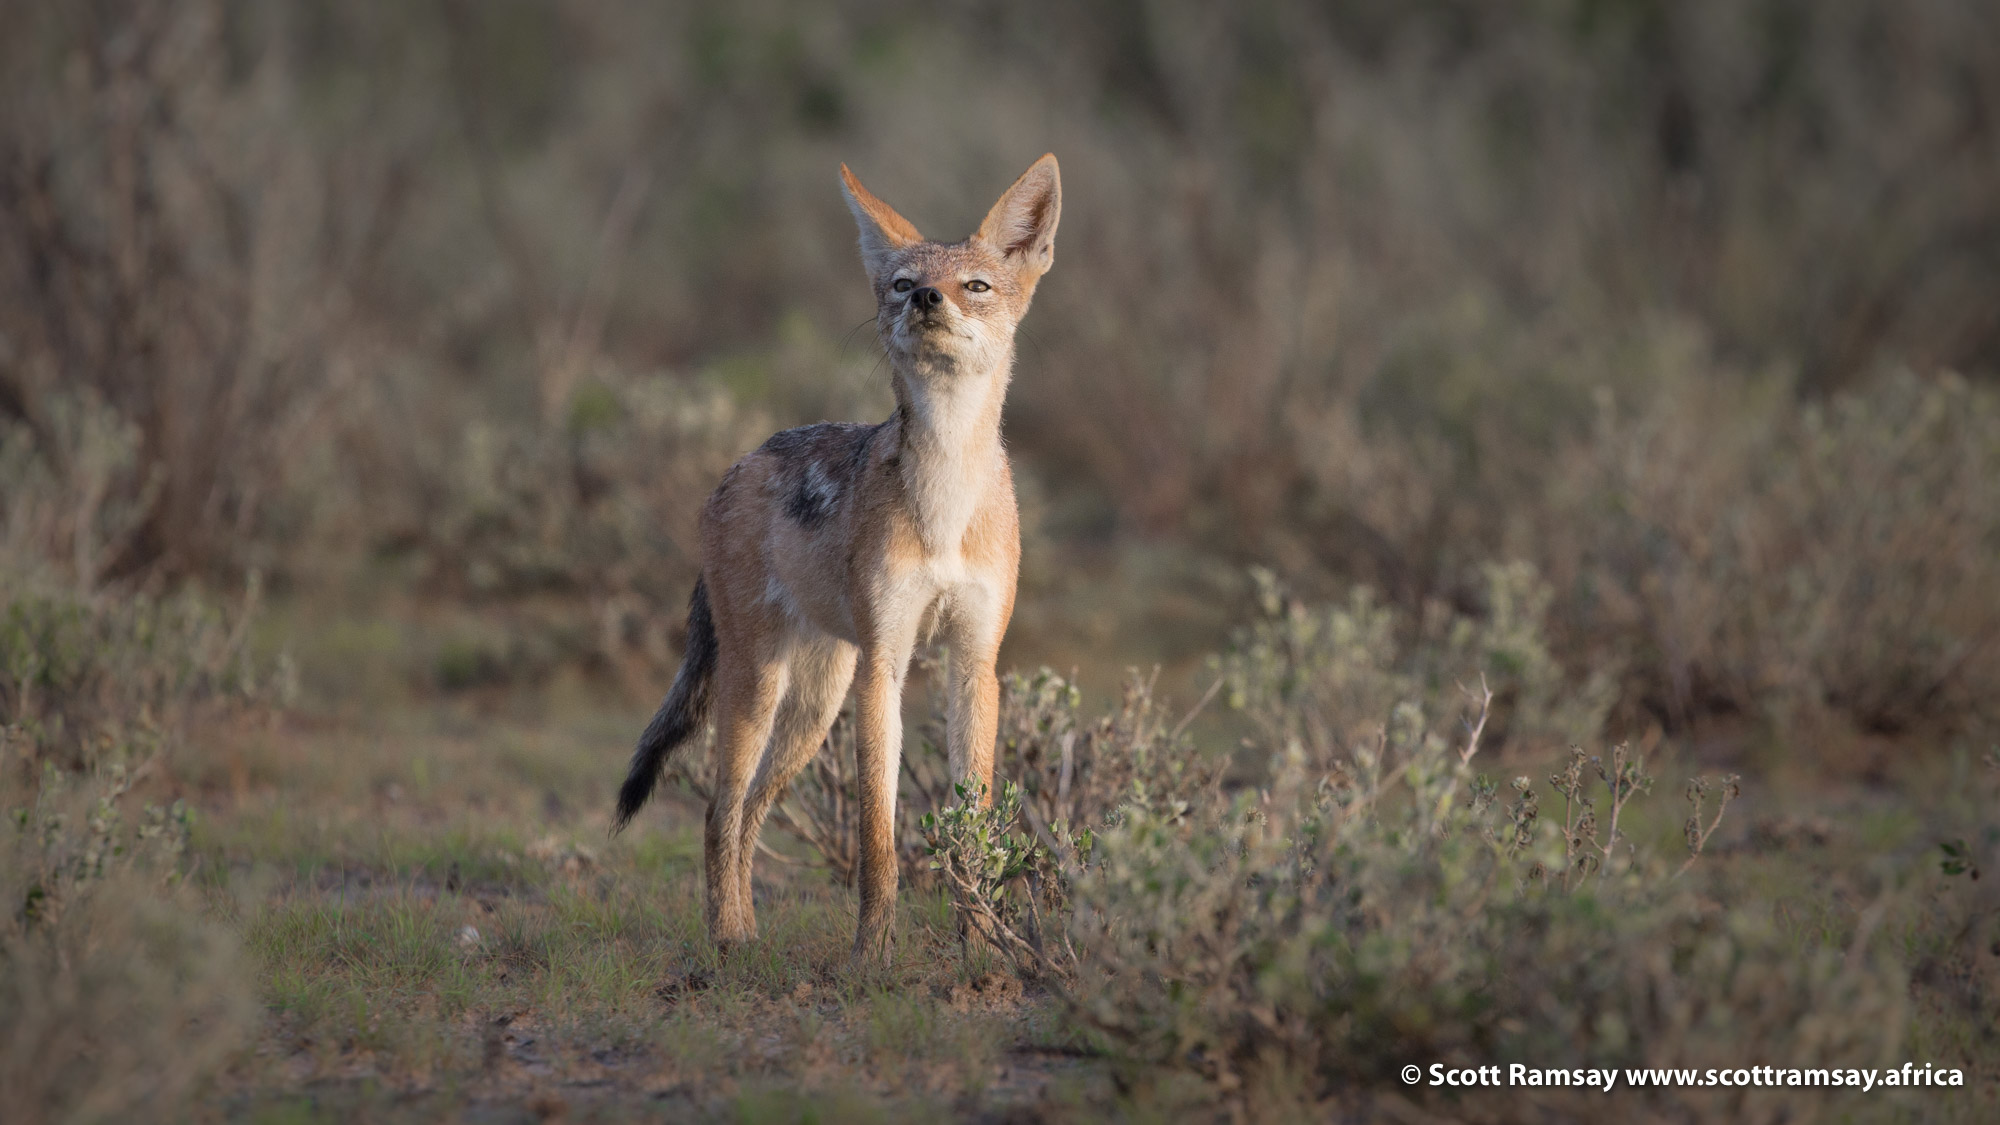 Black-backed jackals are another denizen of the semi-arid Kalahari. Their evocative howling at dawn and dusk is the soundtrack to this immense wilderness. This species will forever be branded into my heart because of the book Cry of the Kalahari, by Mark and Delia Owens, the best-written text on the Kalahari.